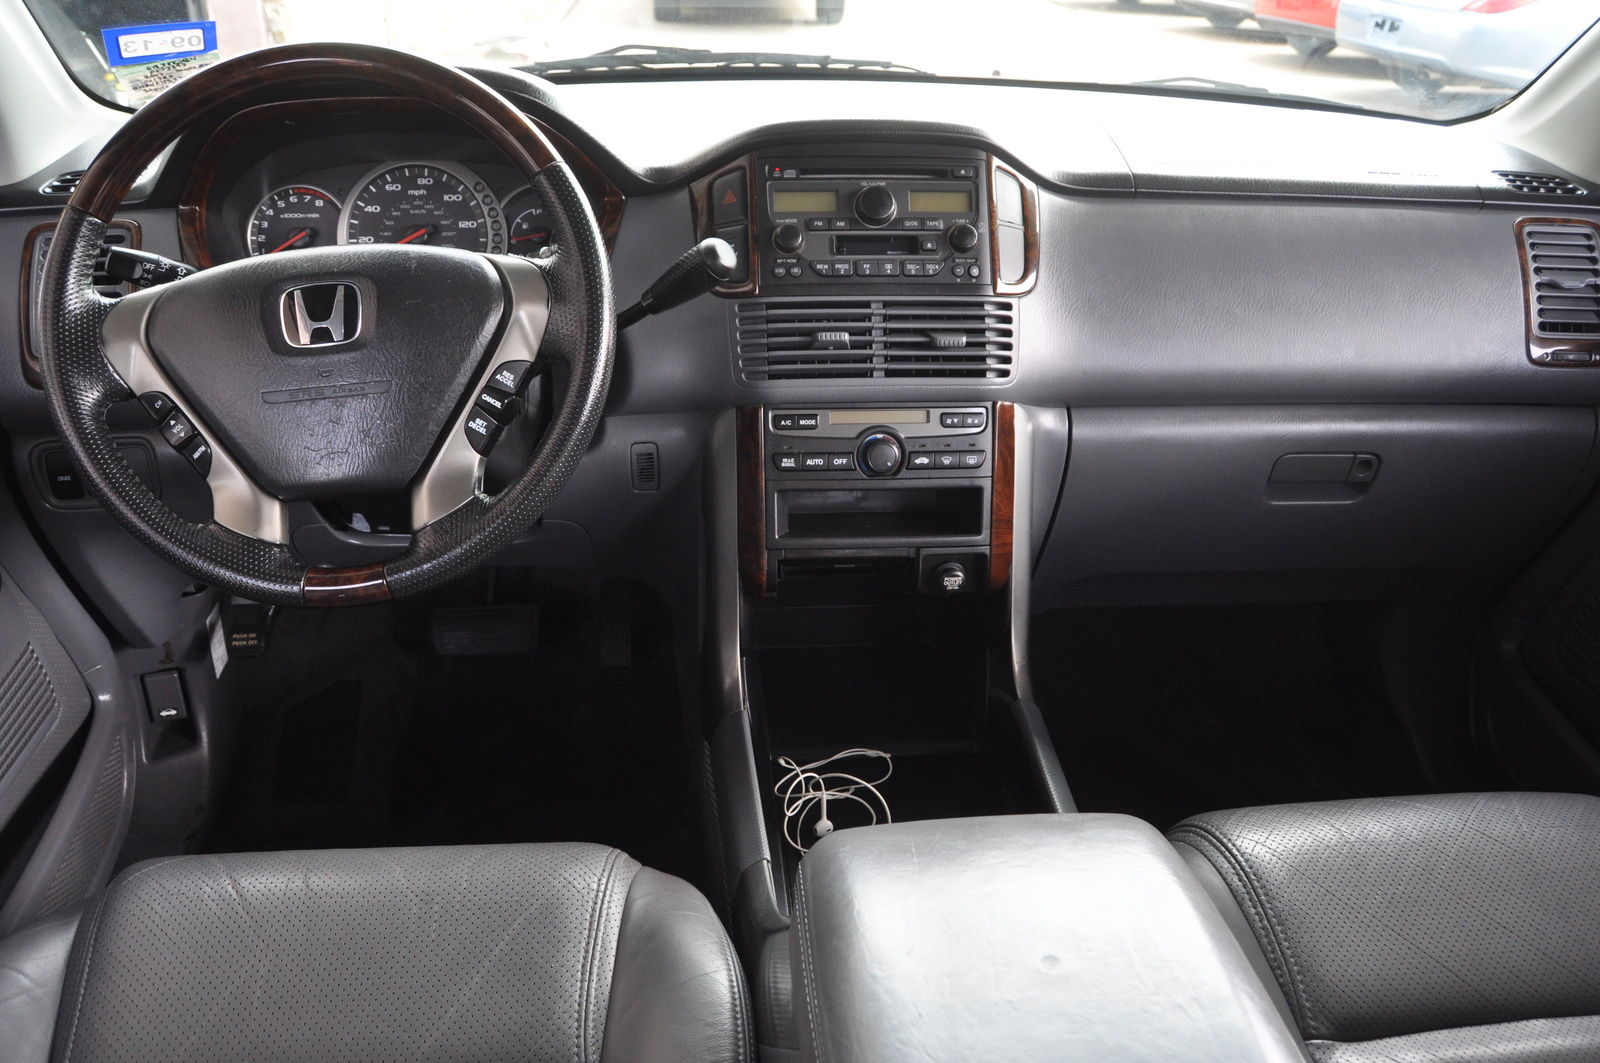 2003 honda pilot interior pictures cargurus. Black Bedroom Furniture Sets. Home Design Ideas